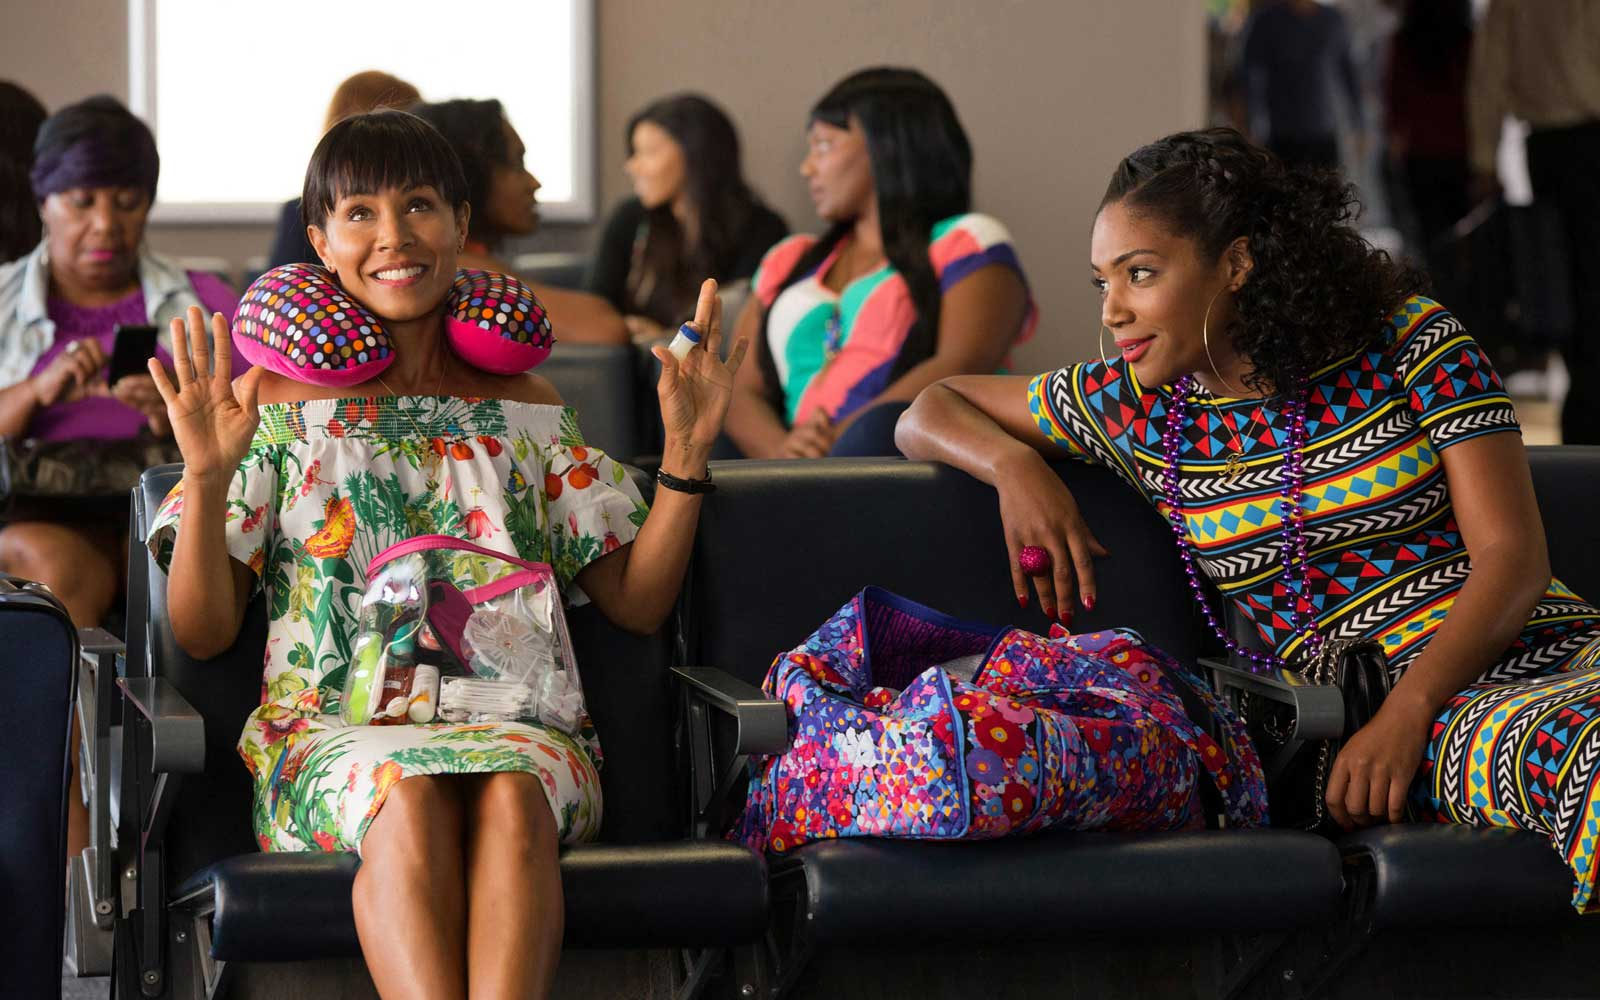 Girls Trip (2017)Directed by Malcolm D. LeeShown from left: Jada Pinkett Smith, Tiffany Haddish